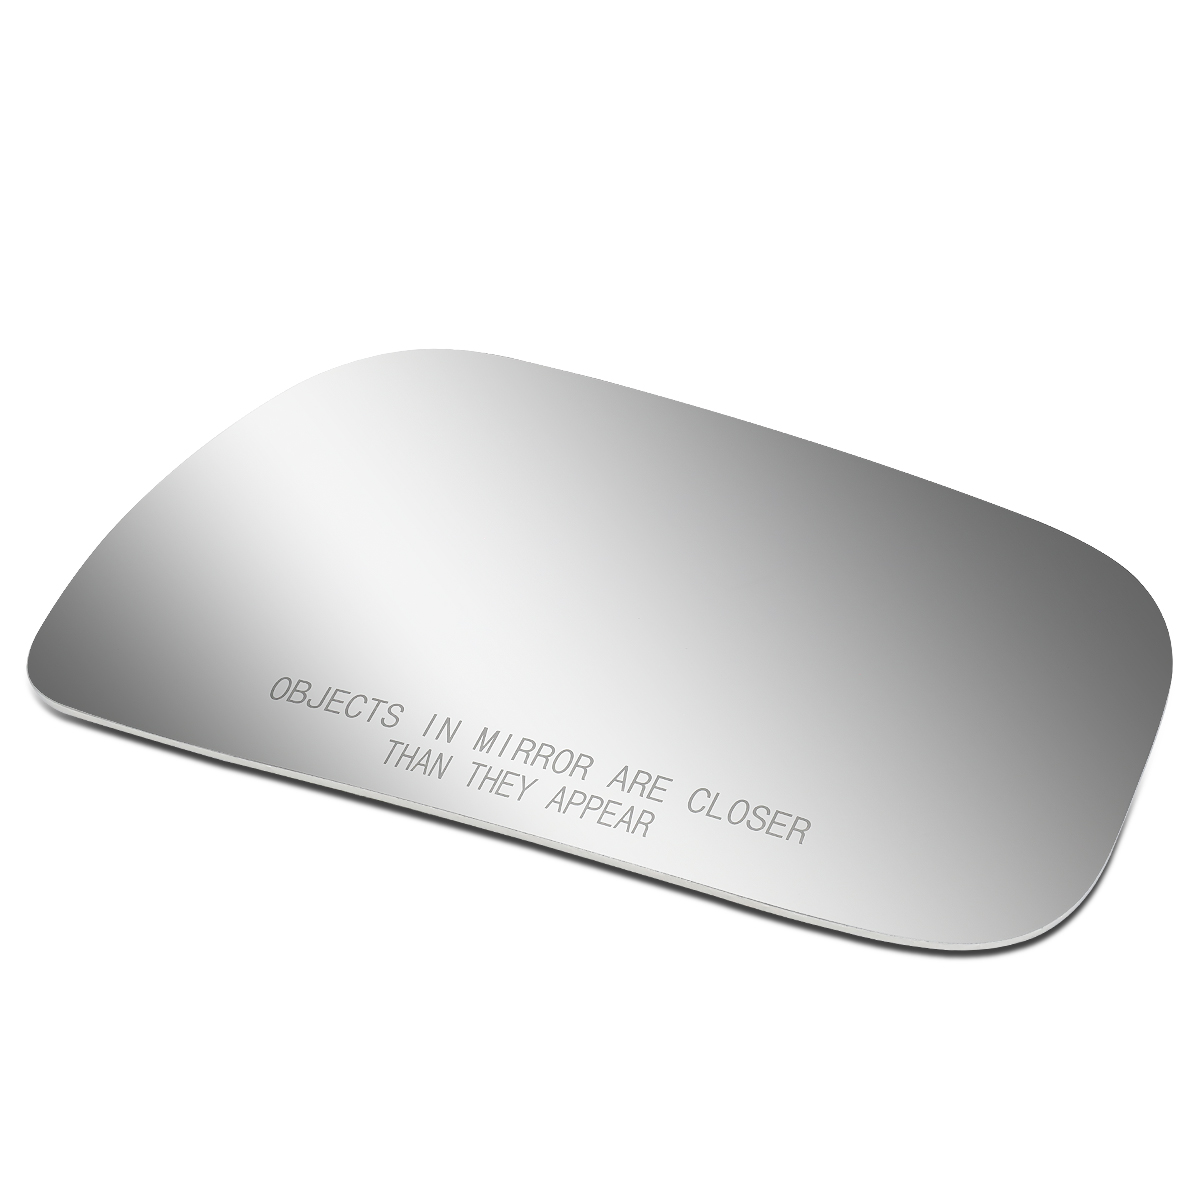 New Door Mirror Glass Replacement Driver Side For Toyota Camry 92-01